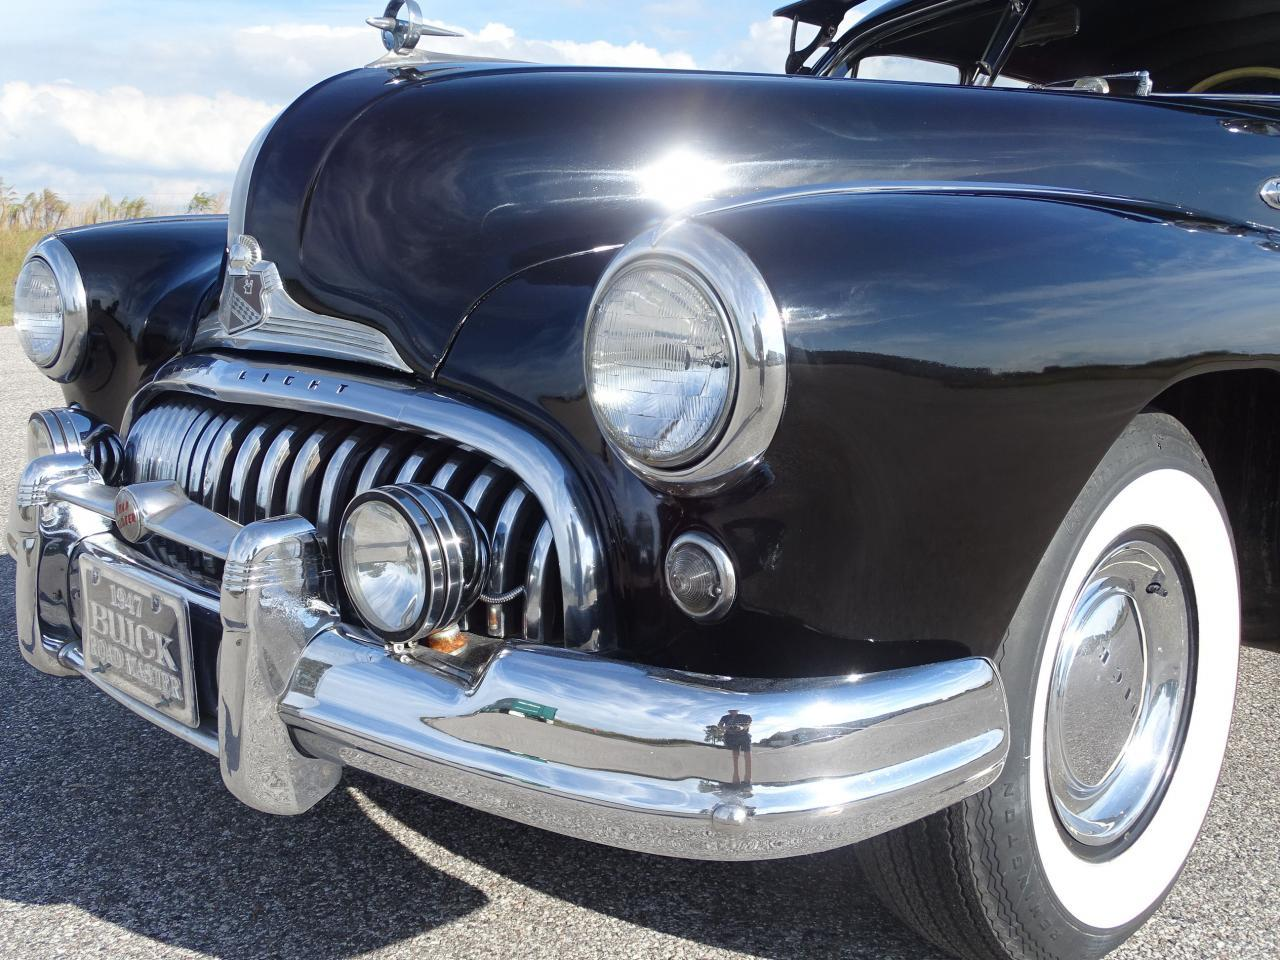 Large Picture of 1947 Buick Roadmaster located in Florida - $14,995.00 Offered by Gateway Classic Cars - Tampa - MBS8